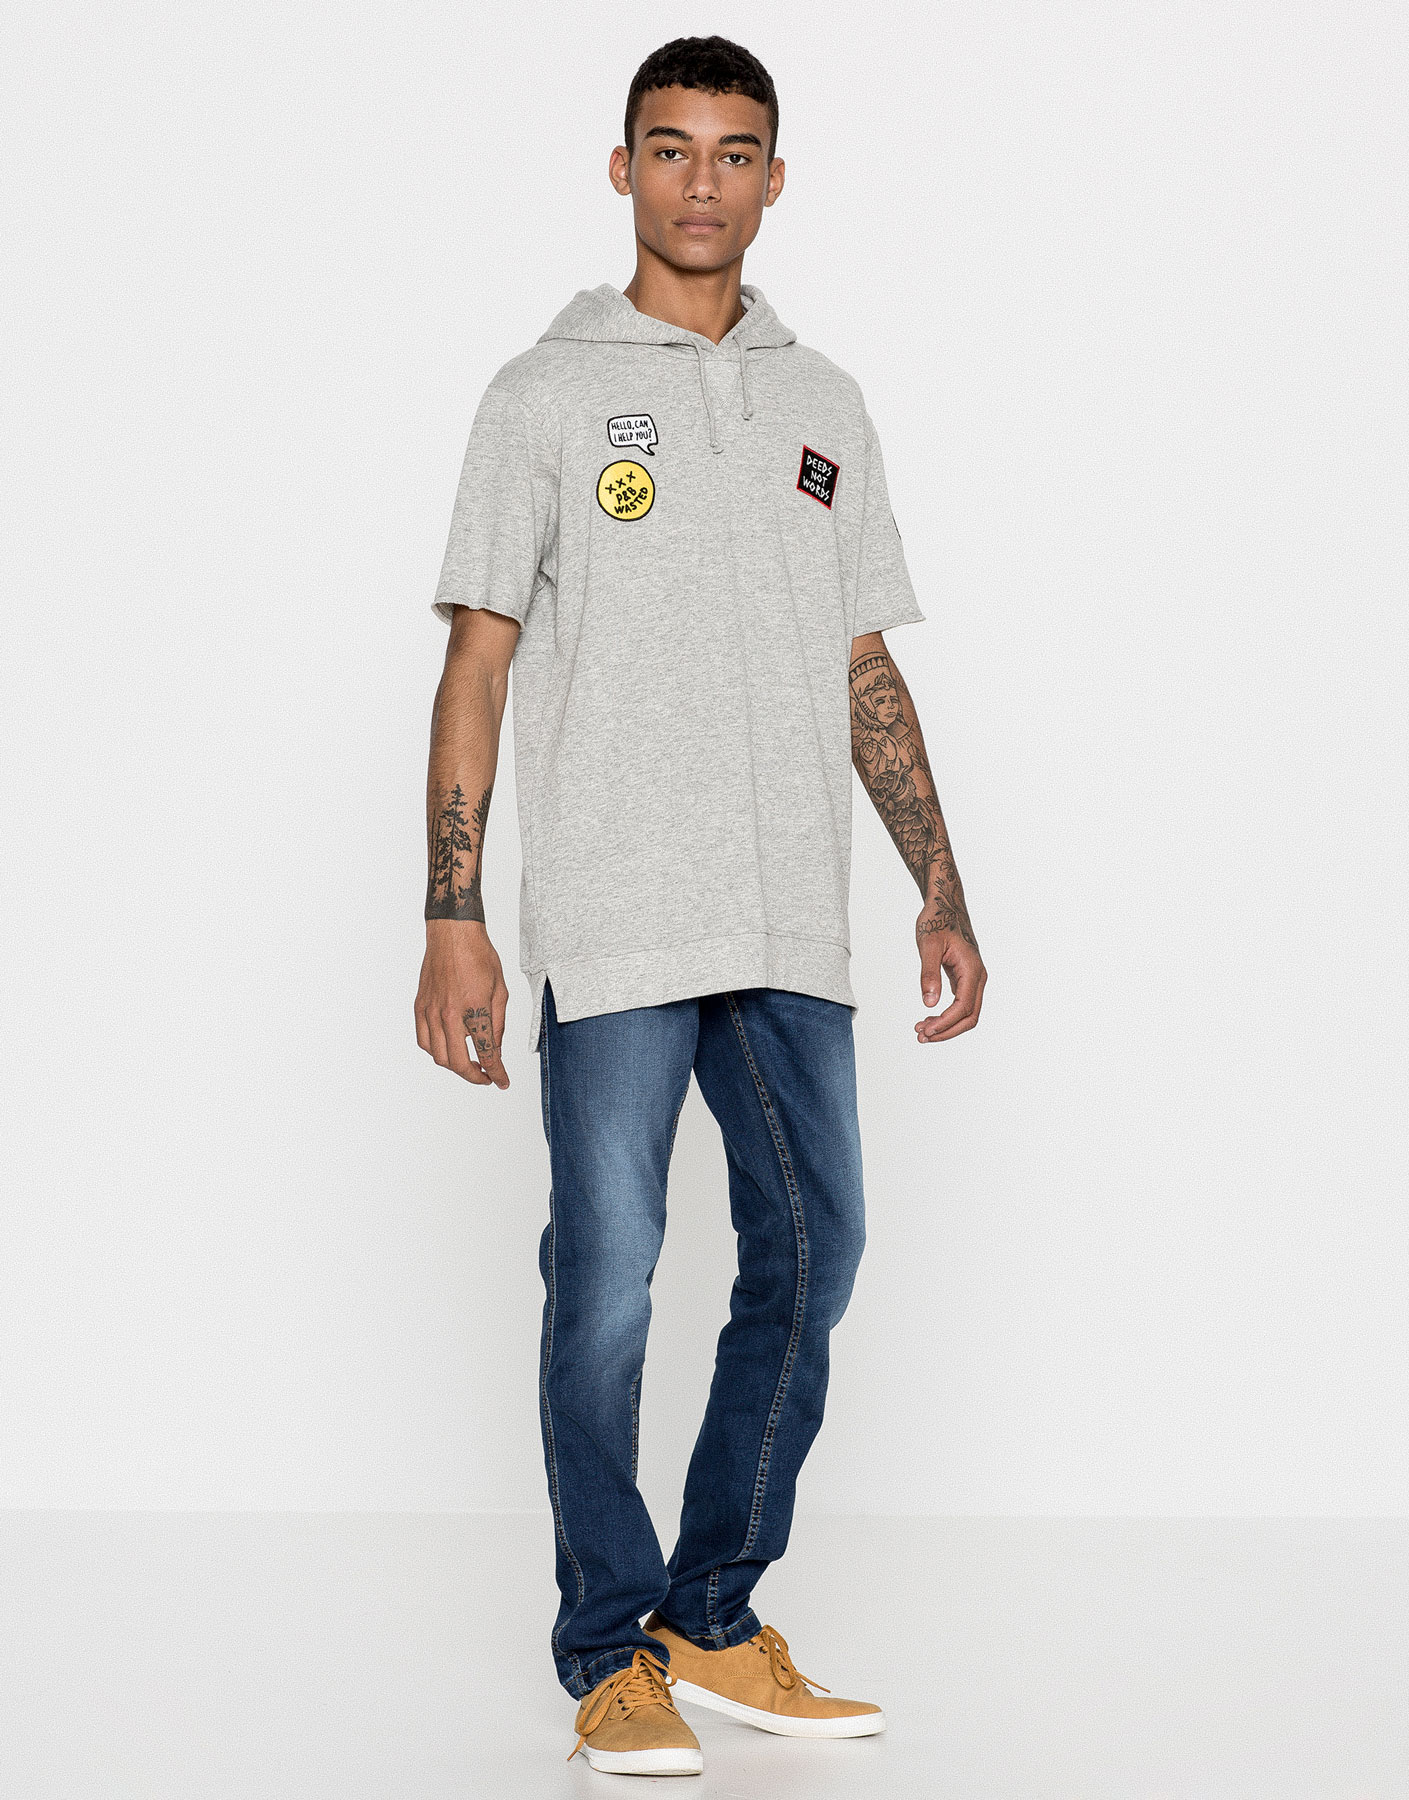 Short-sleeve sweatshirt with patches